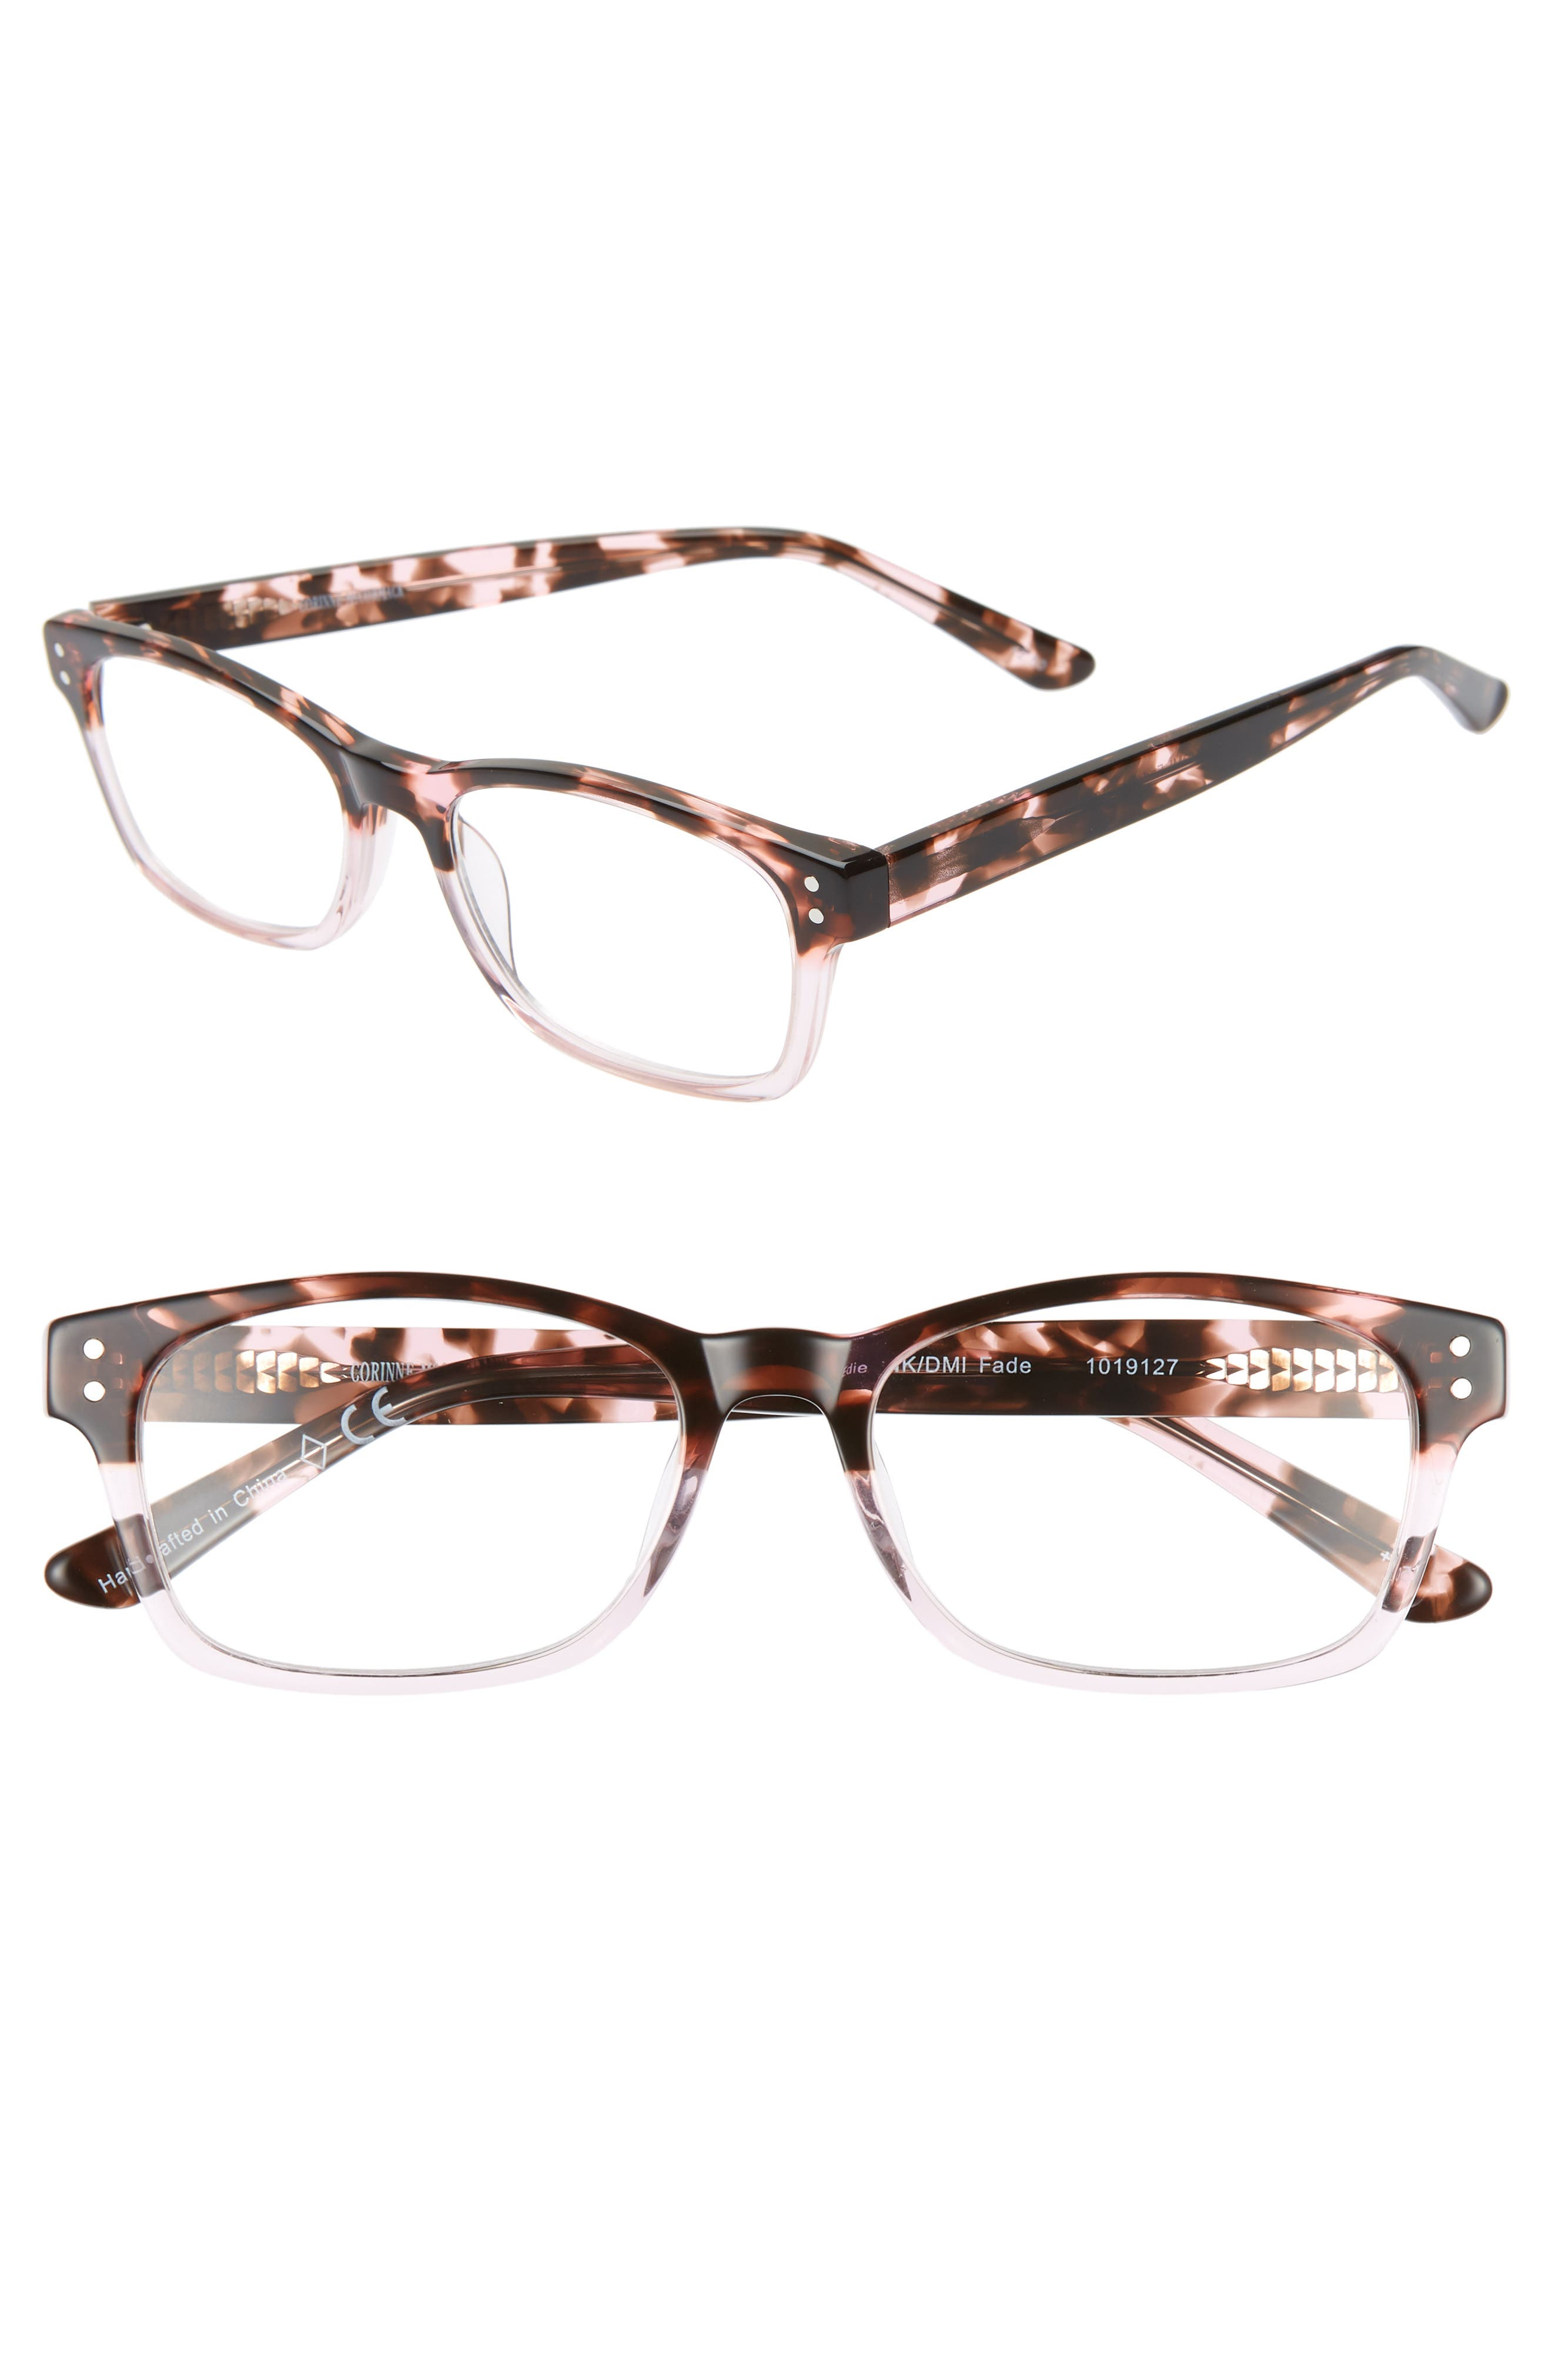 CORINNE MCCORMACK Edie 52Mm Reading Glasses in Pink Demi Fade